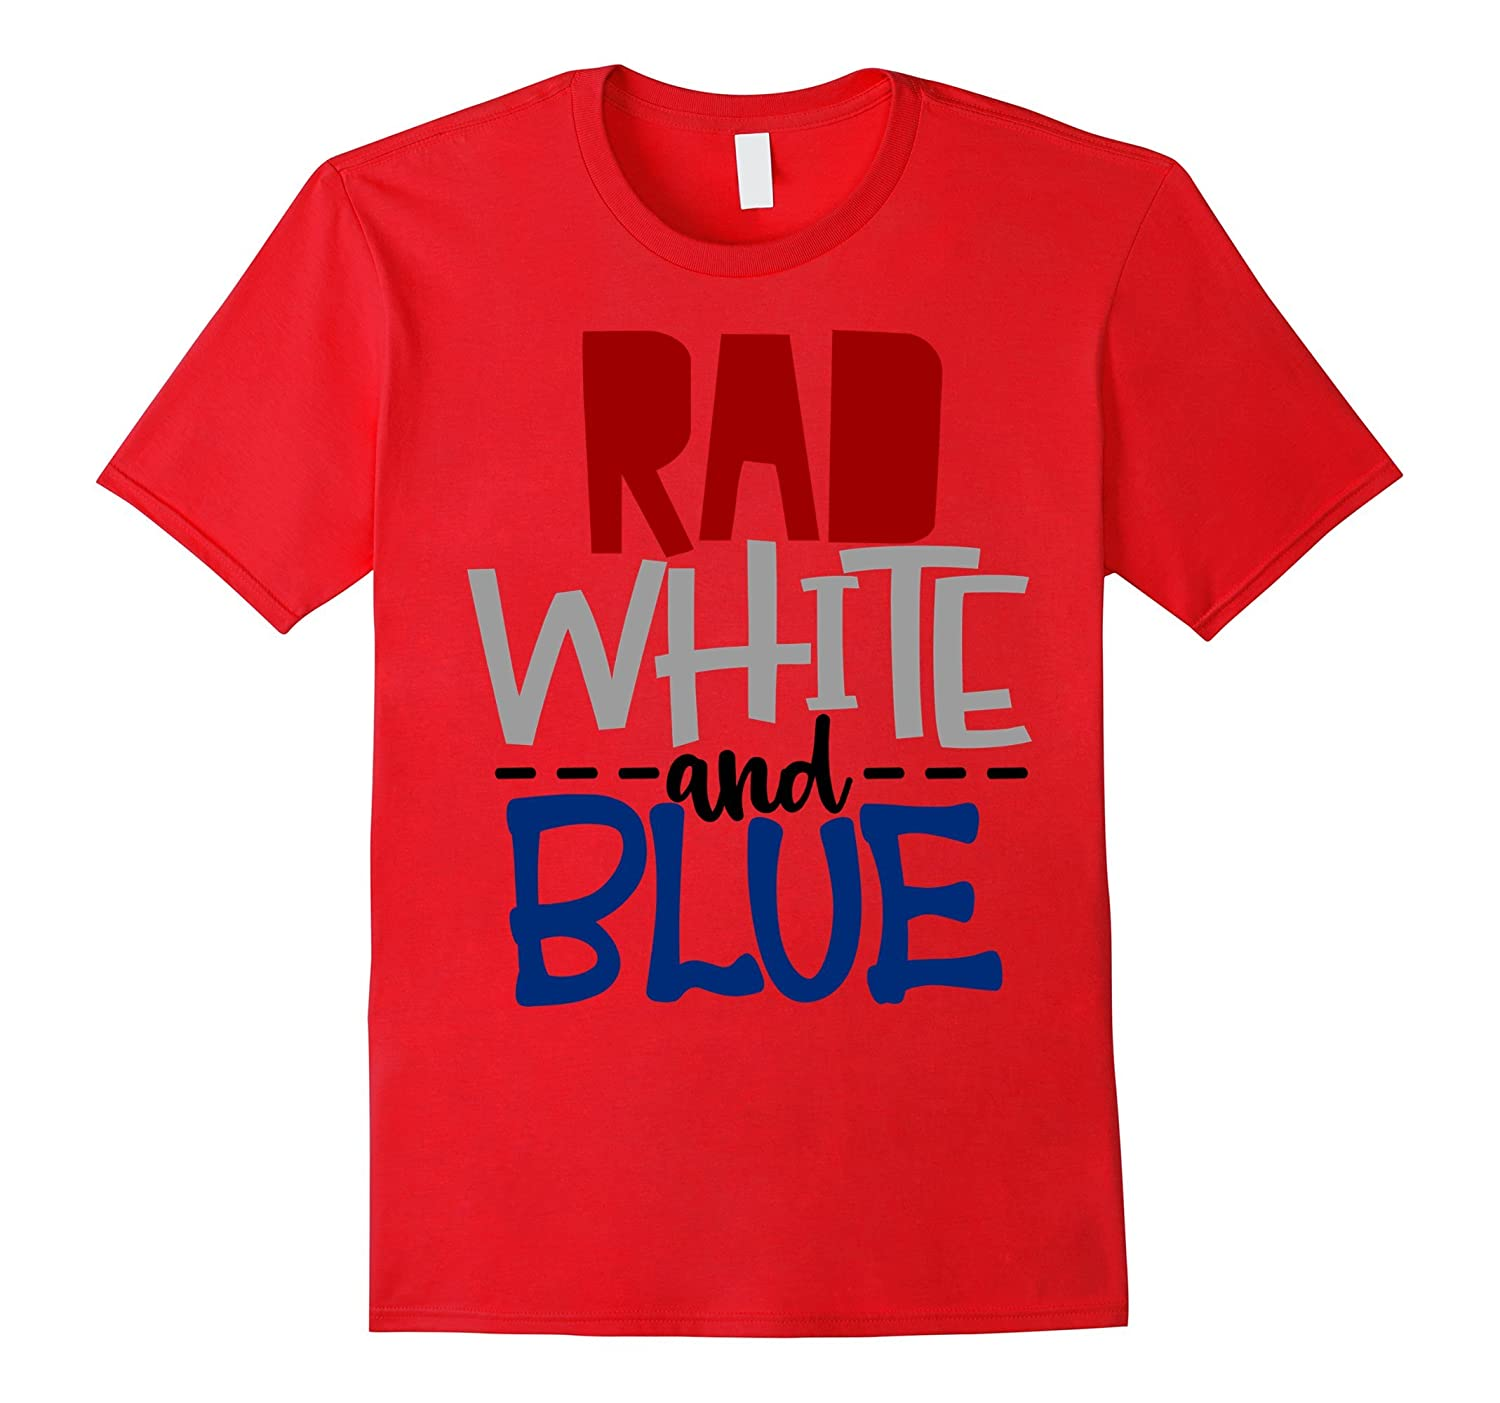 July 4th Shirt America USA Rad White Blue Cool Kids Son Boys-TH